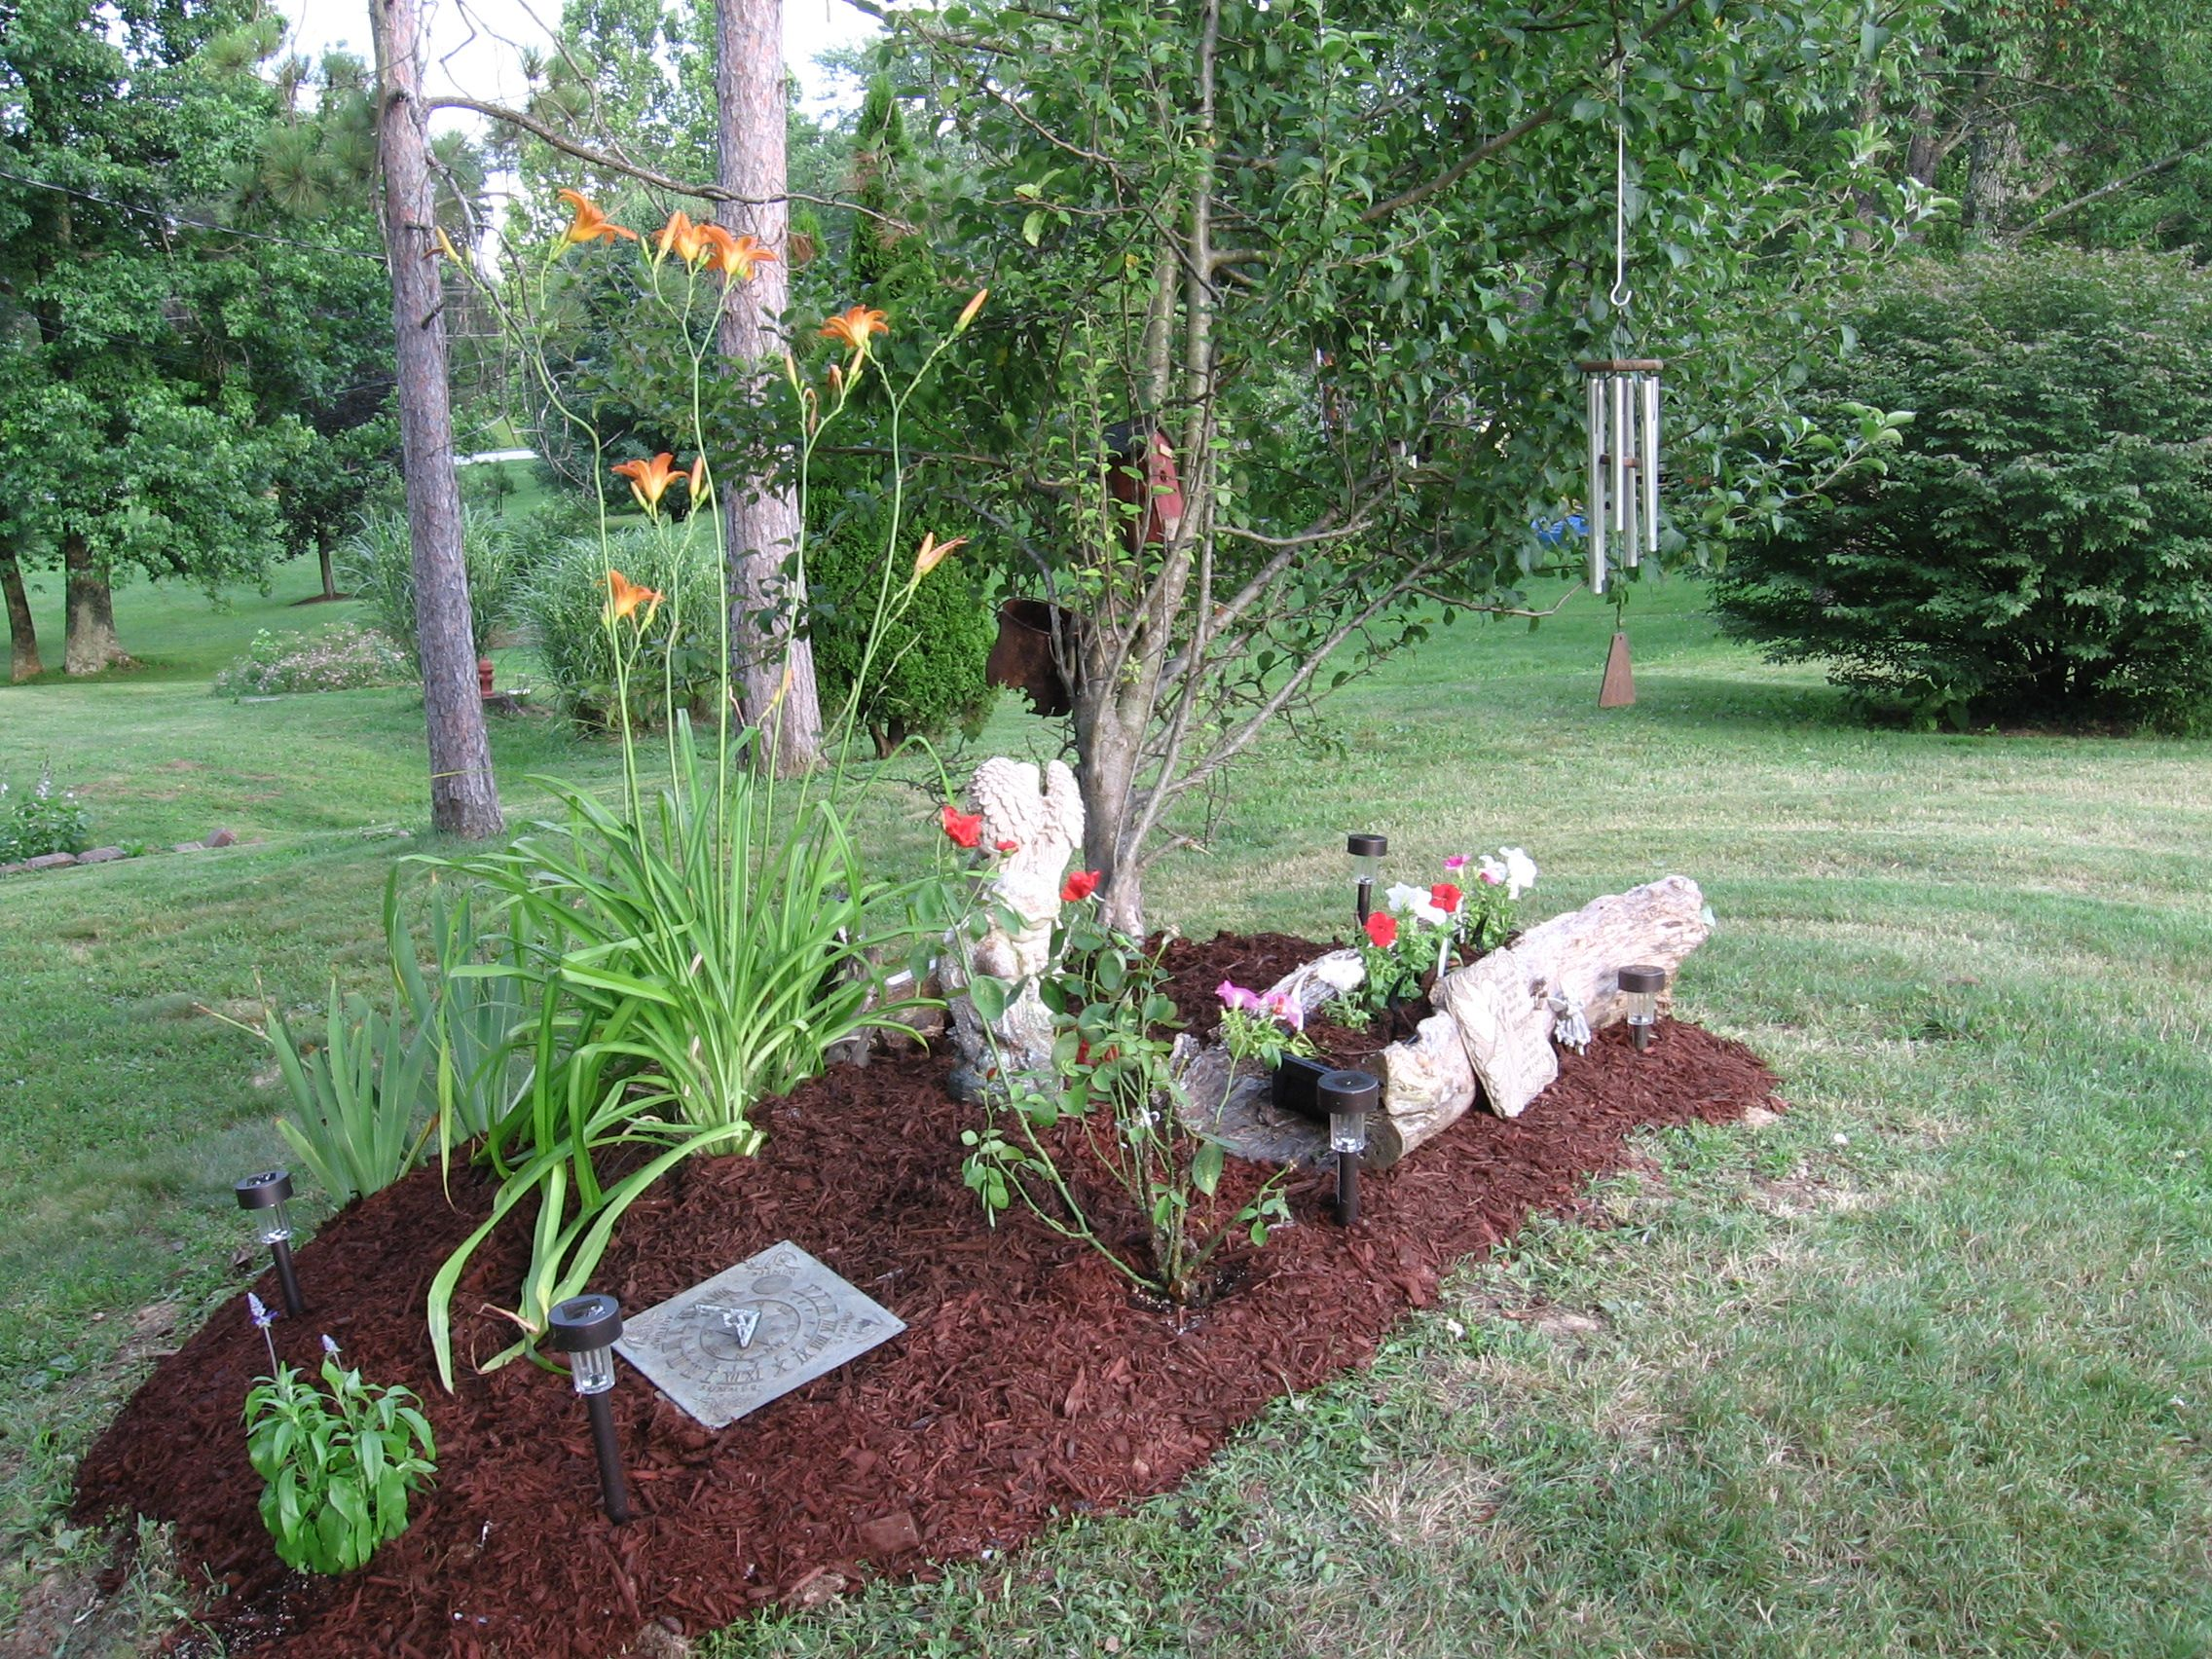 Backyard Memorial Garden Ideas on backyard planning ideas, backyard theater ideas, backyard swimming pool ideas, backyard labyrinth ideas, backyard tree house ideas,